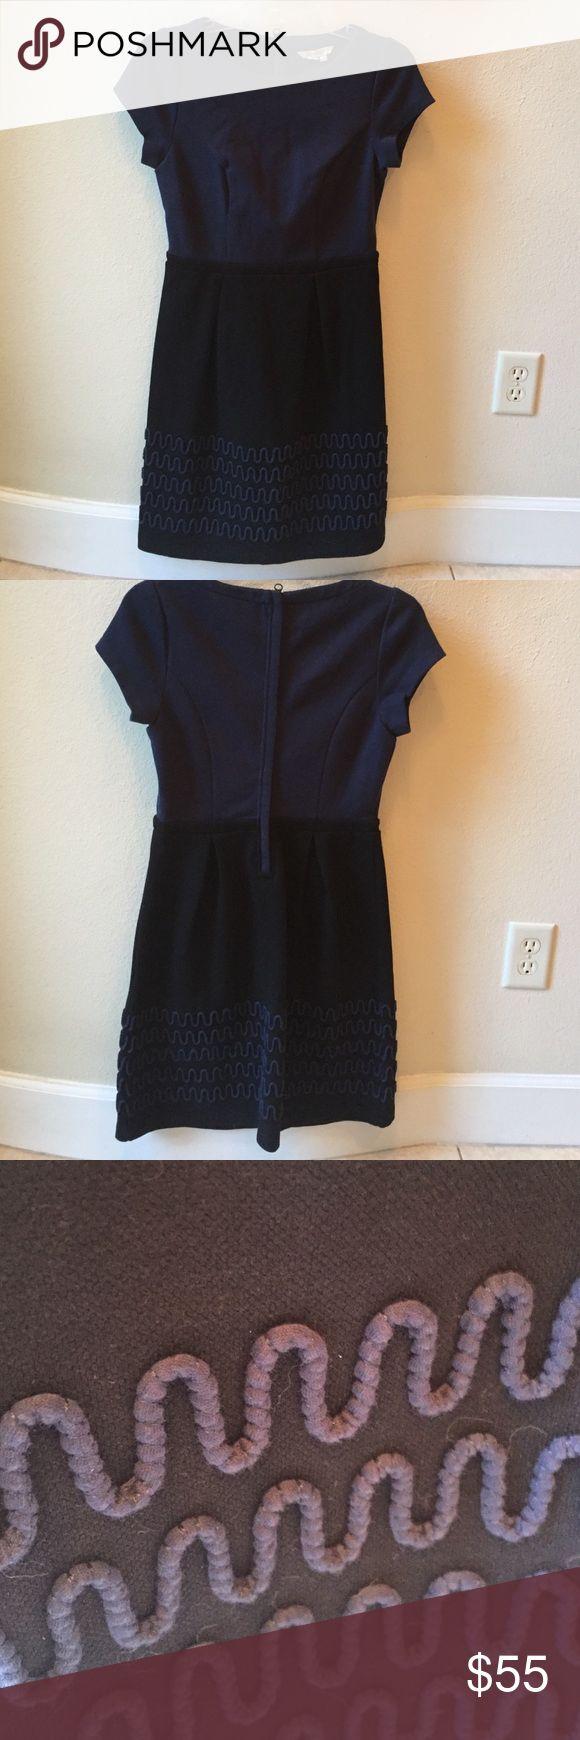 Boden Navy and Black Dress This is a great going out dress, but could easily be worn to the office. Thicker cotton blend. Top part is navy and bottom is black with the navy embroidery. Back zip. Comfy but chic. Looks great with boots. Wore once! Boden Dresses Midi